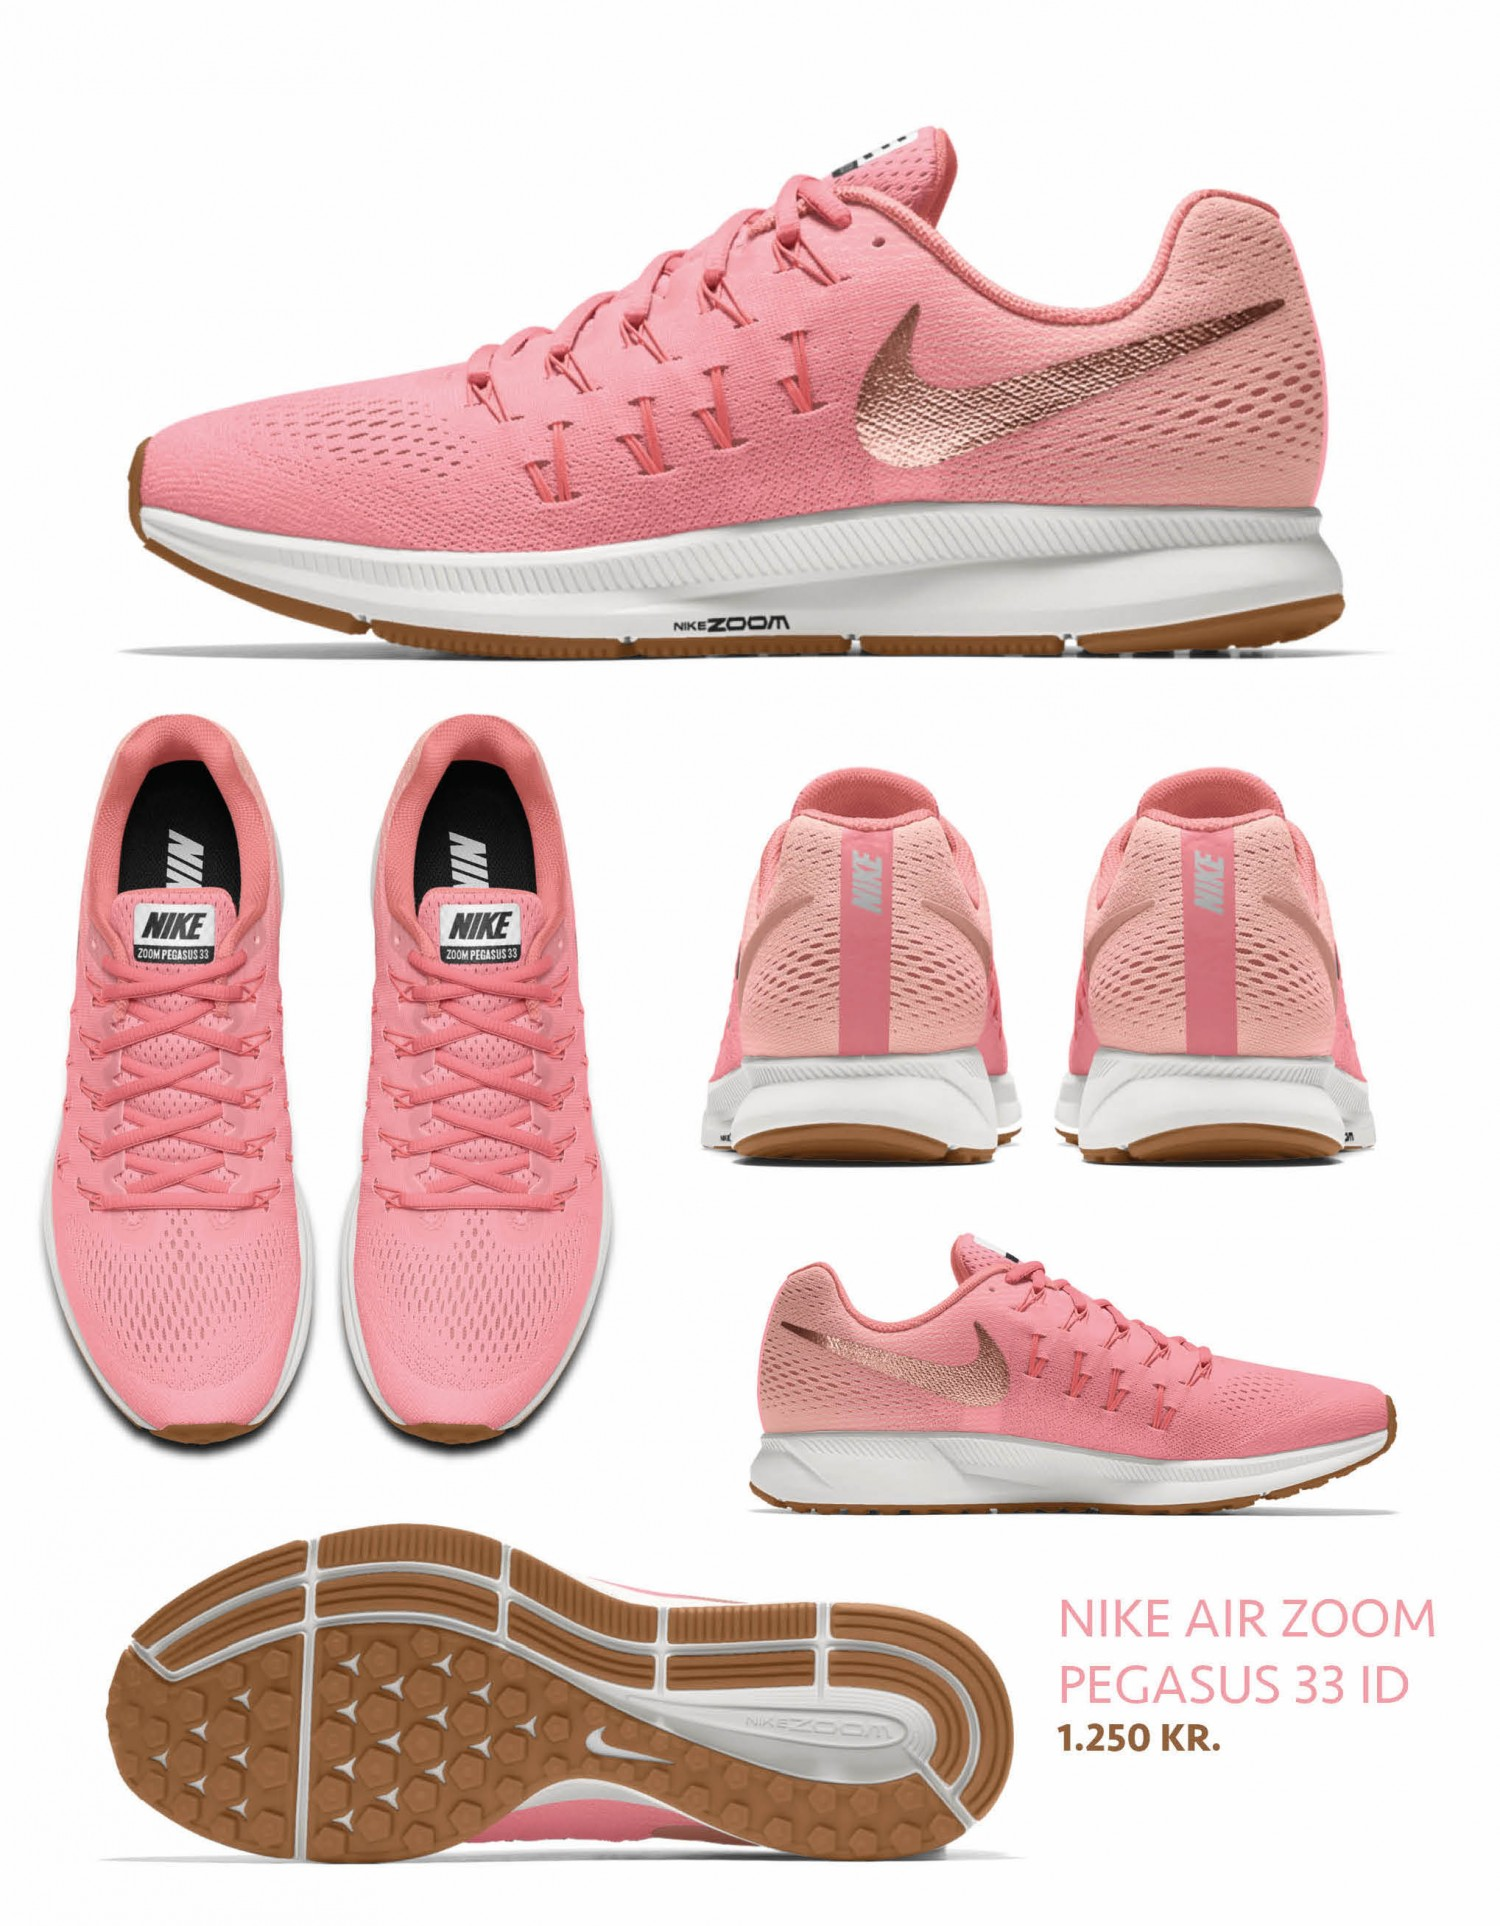 nike-airzoom